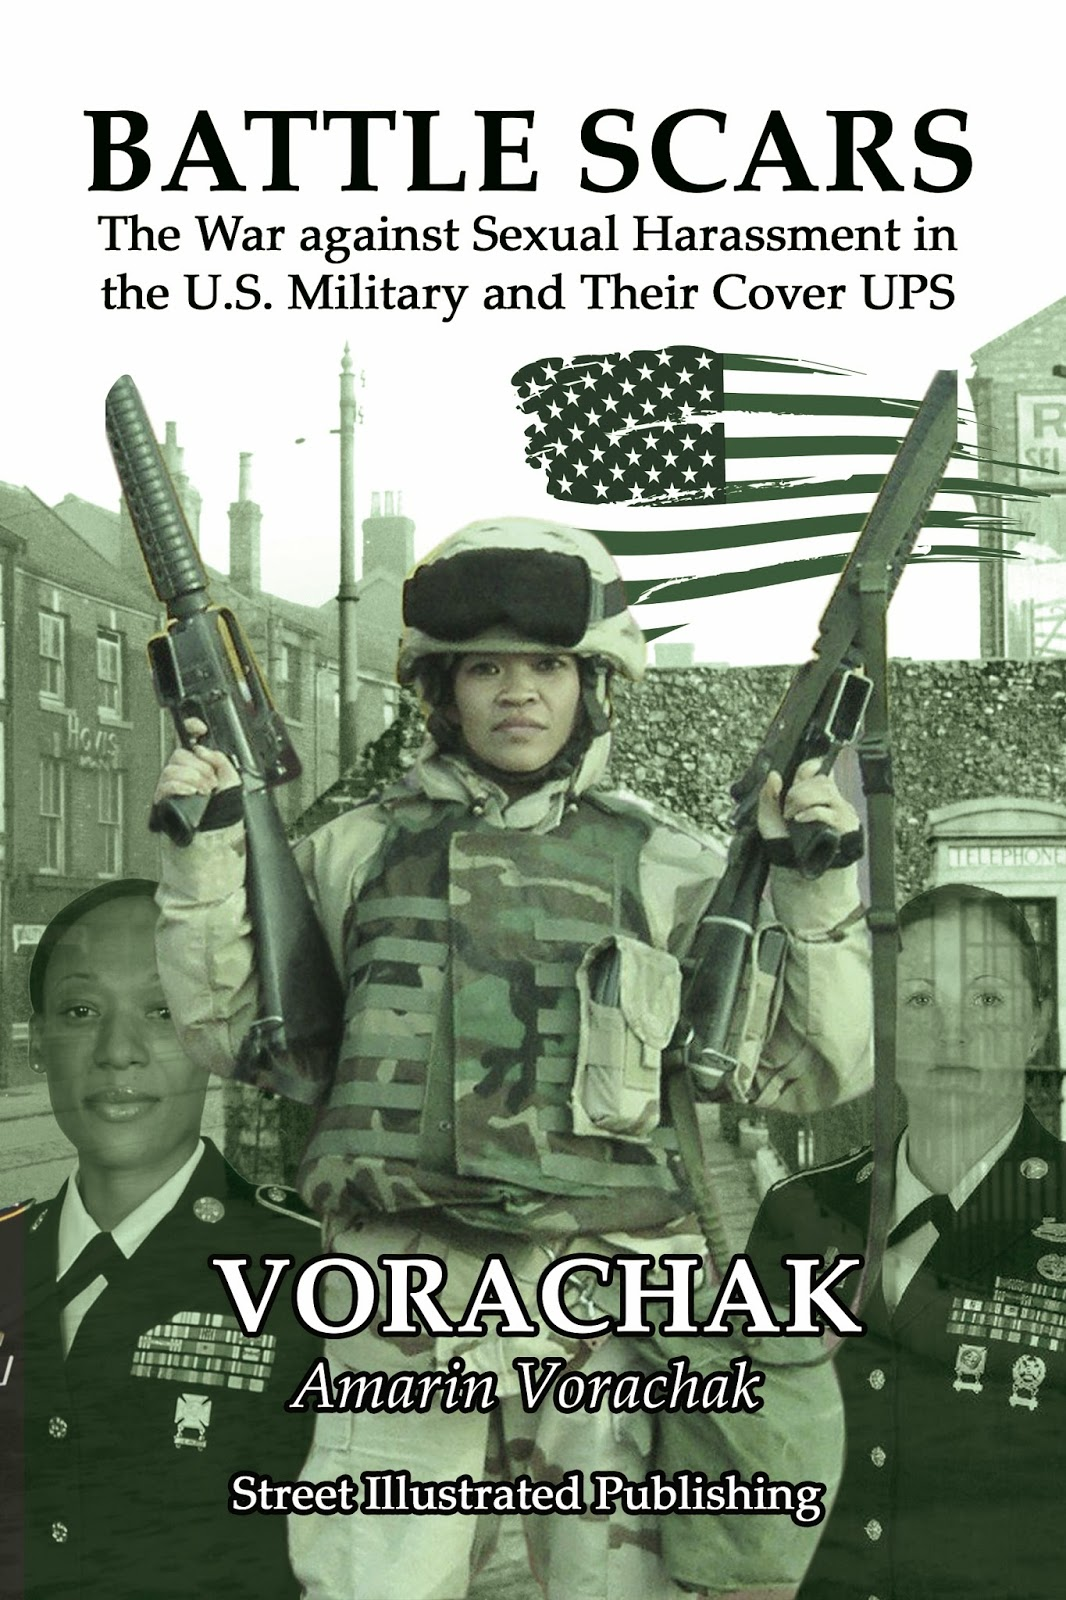 battle scars, amarin vorachak, sexual harrassment military, sex cover up military